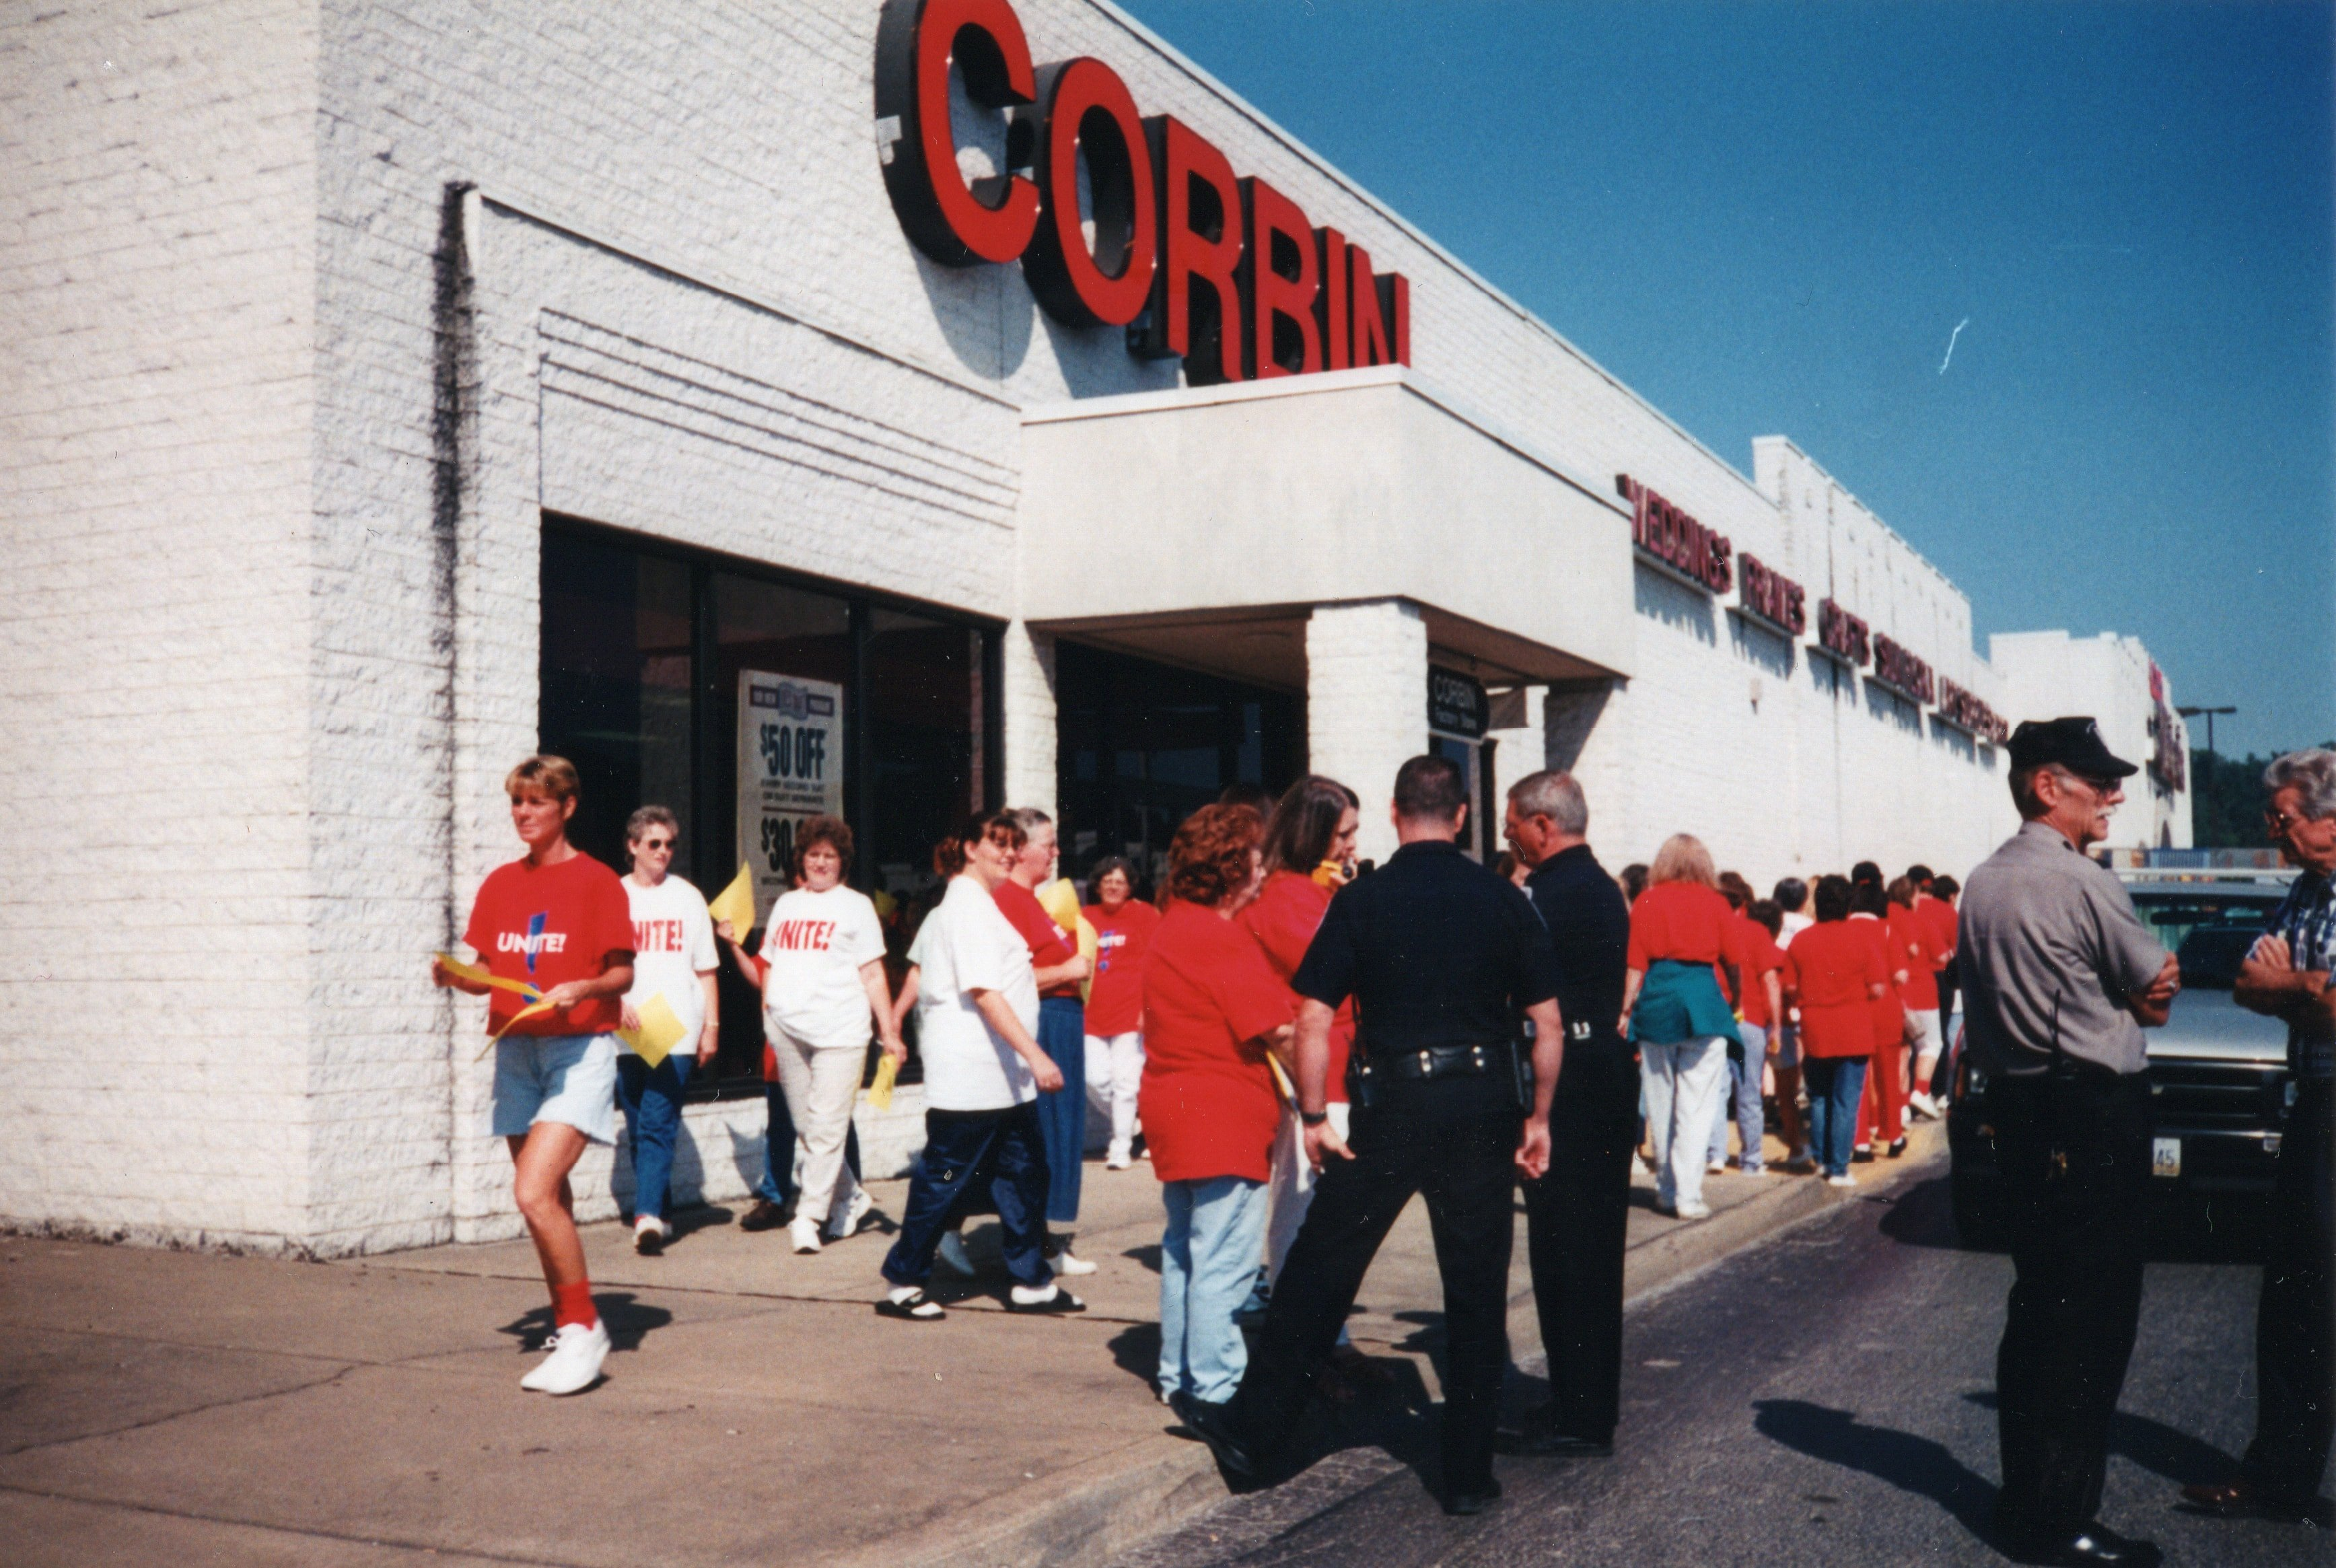 UNITE Union Protesters being questioned by police about activity and possession of necessary permits at Corbin Ltd. Factory Store at Huntington Mall, Barboursville, WV, 1996